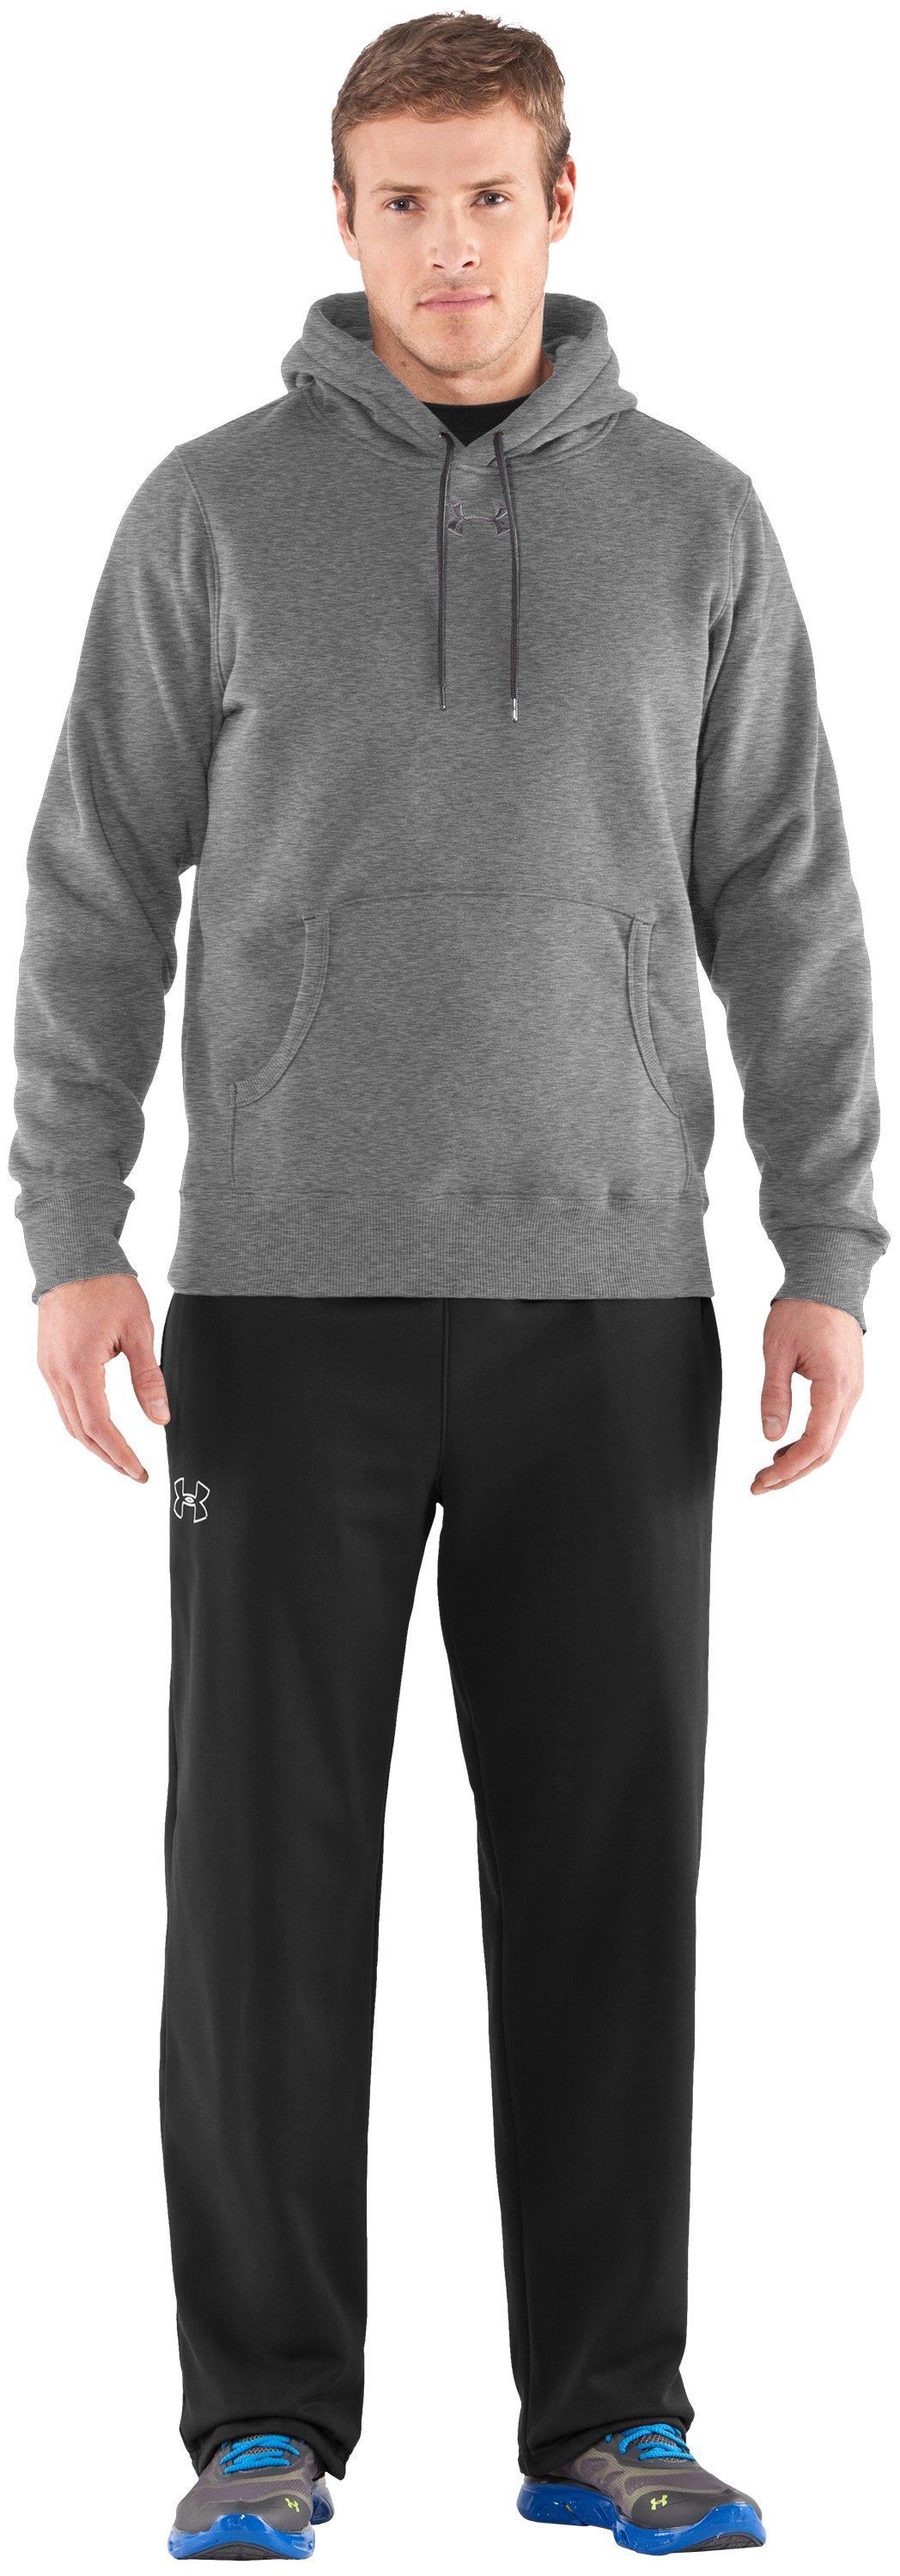 Men's Team Charged Cotton® Storm Hoodie, True Gray Heather